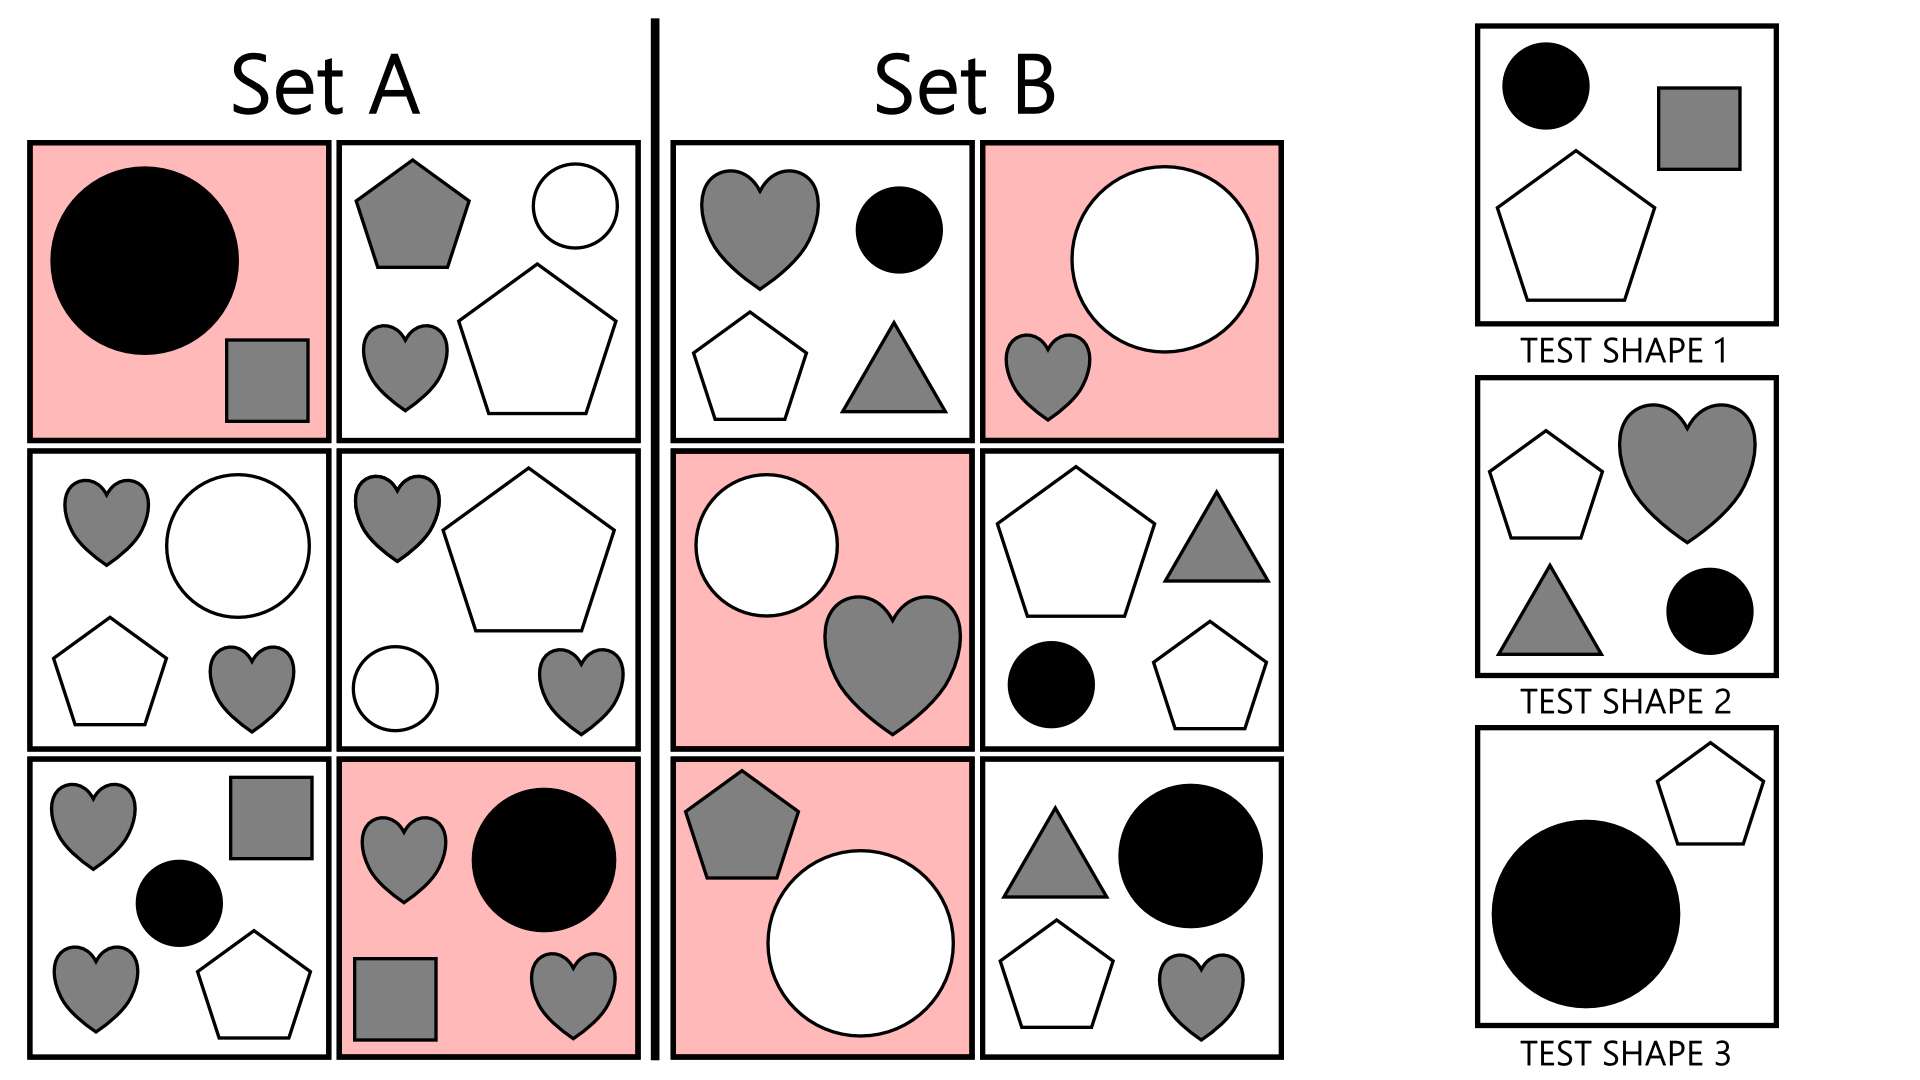 A conditional sample question with the 'simpler' boxes for each set highlighted in red